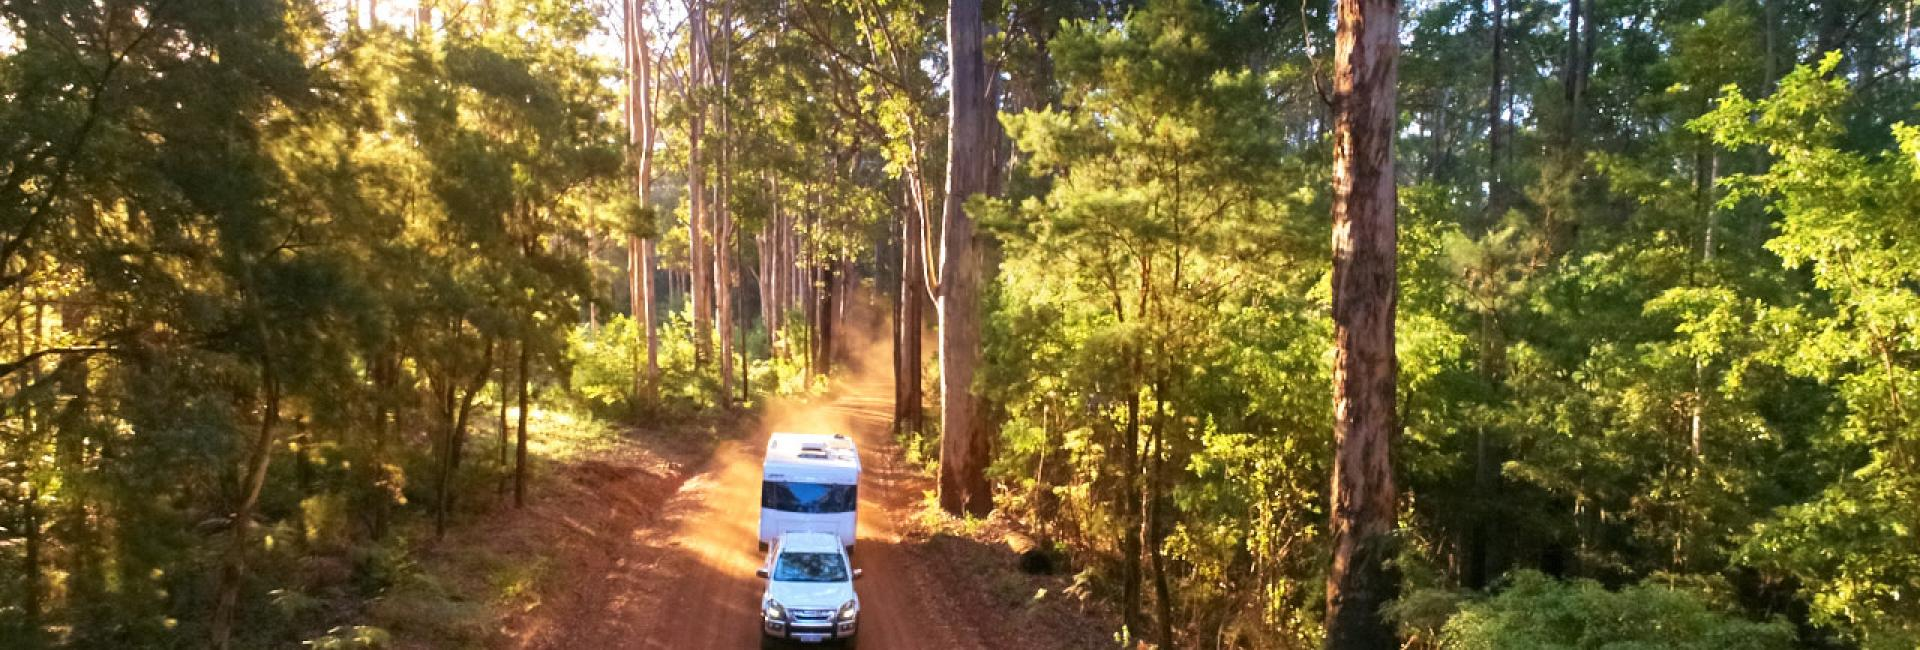 A car with a campervan drives on a dirt road in a green forest